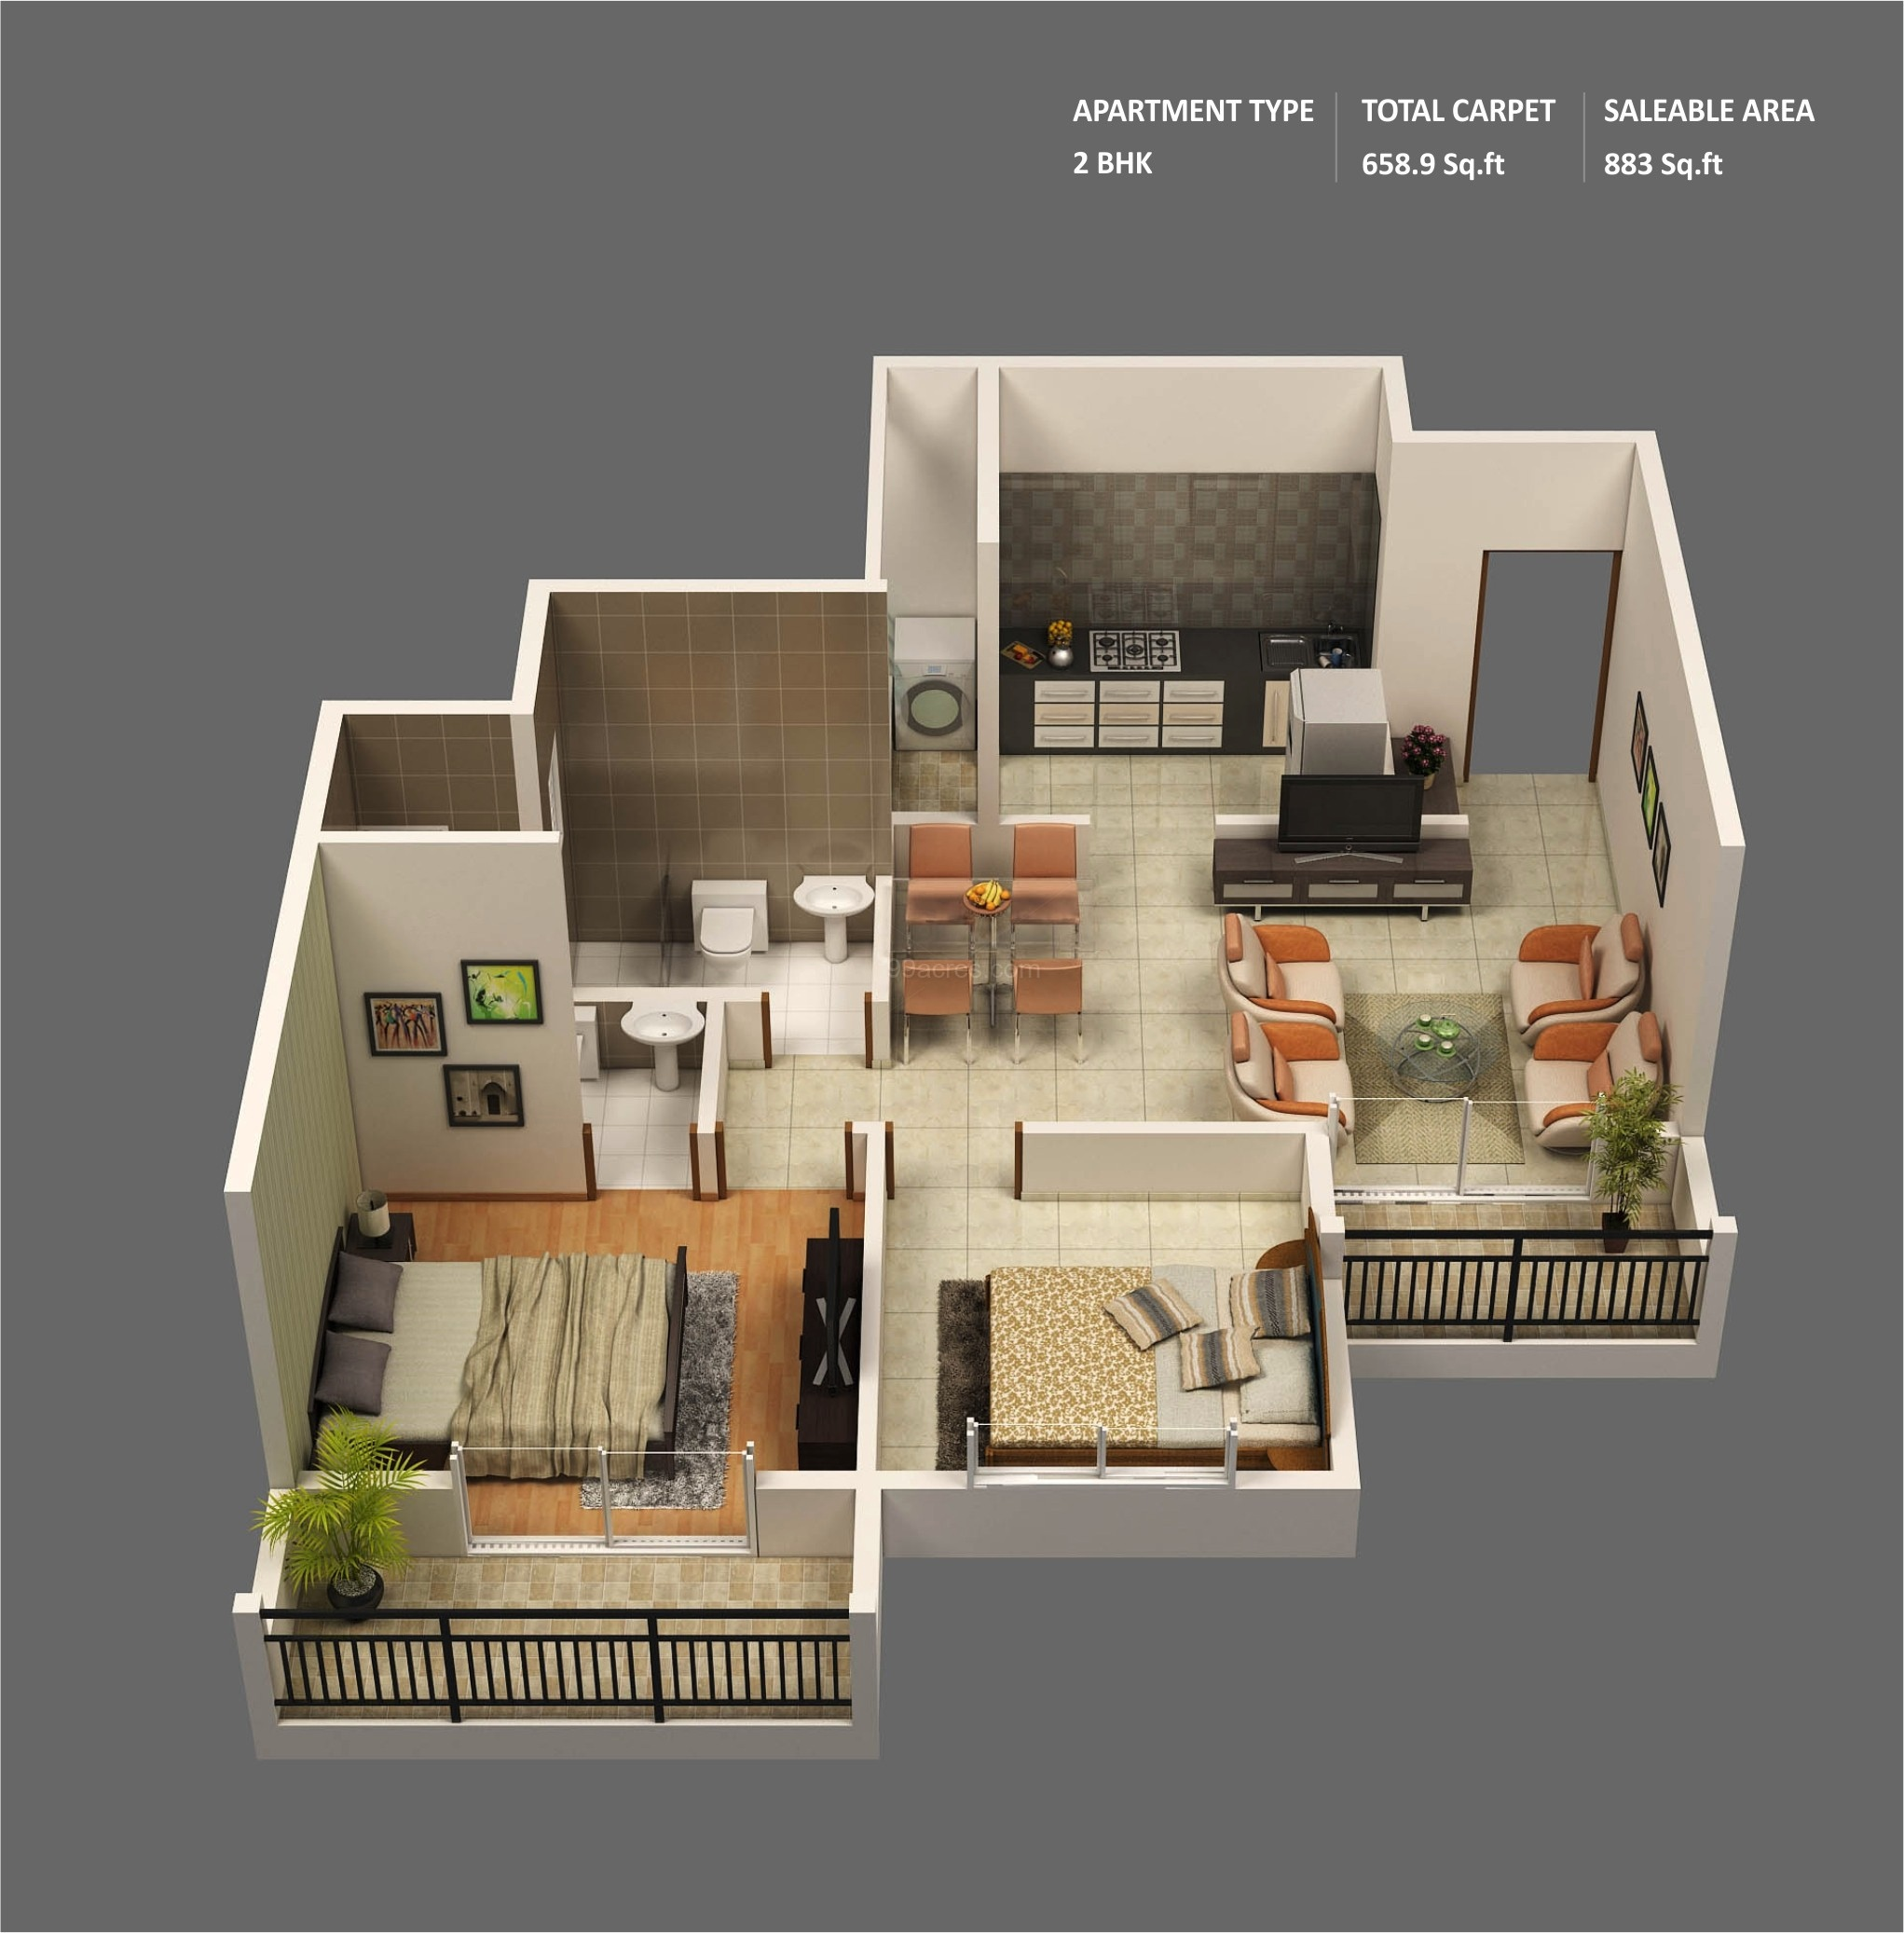 24 Modern Design Two Bedroom Two Bathroom  50 Two 2 Bedroom Apartment House  Plans Eshwar3 Bedroom Apartments For Cheap   Moncler Factory Outlets com. 2 Bedroom Apartments In Dc All Utilities Included. Home Design Ideas